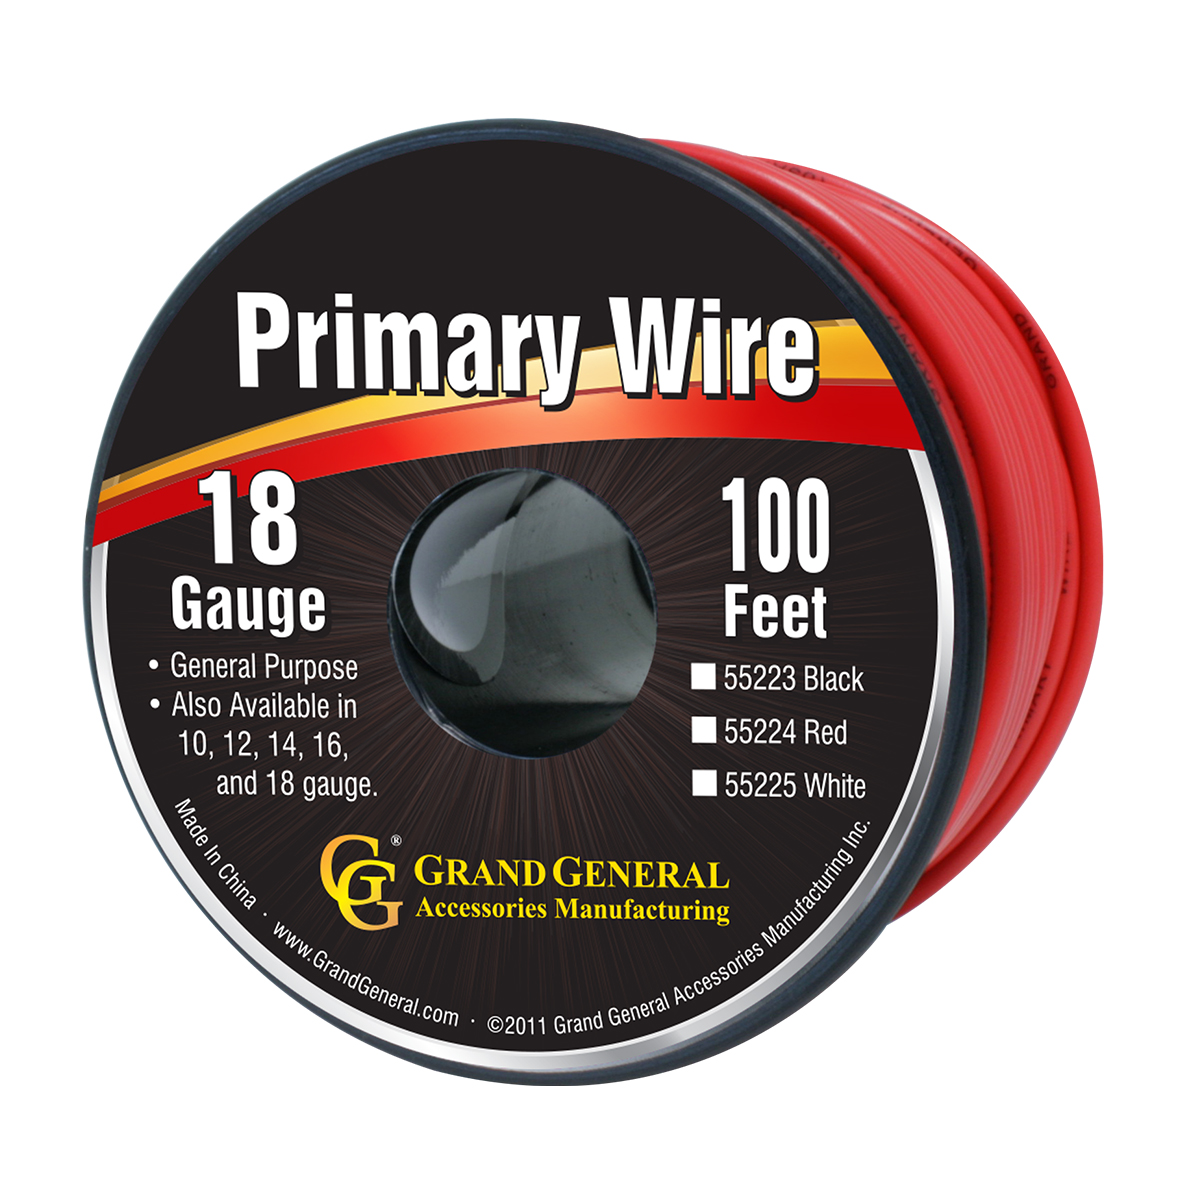 55224 Primary Wire in 18 Gauge, 100 Feet